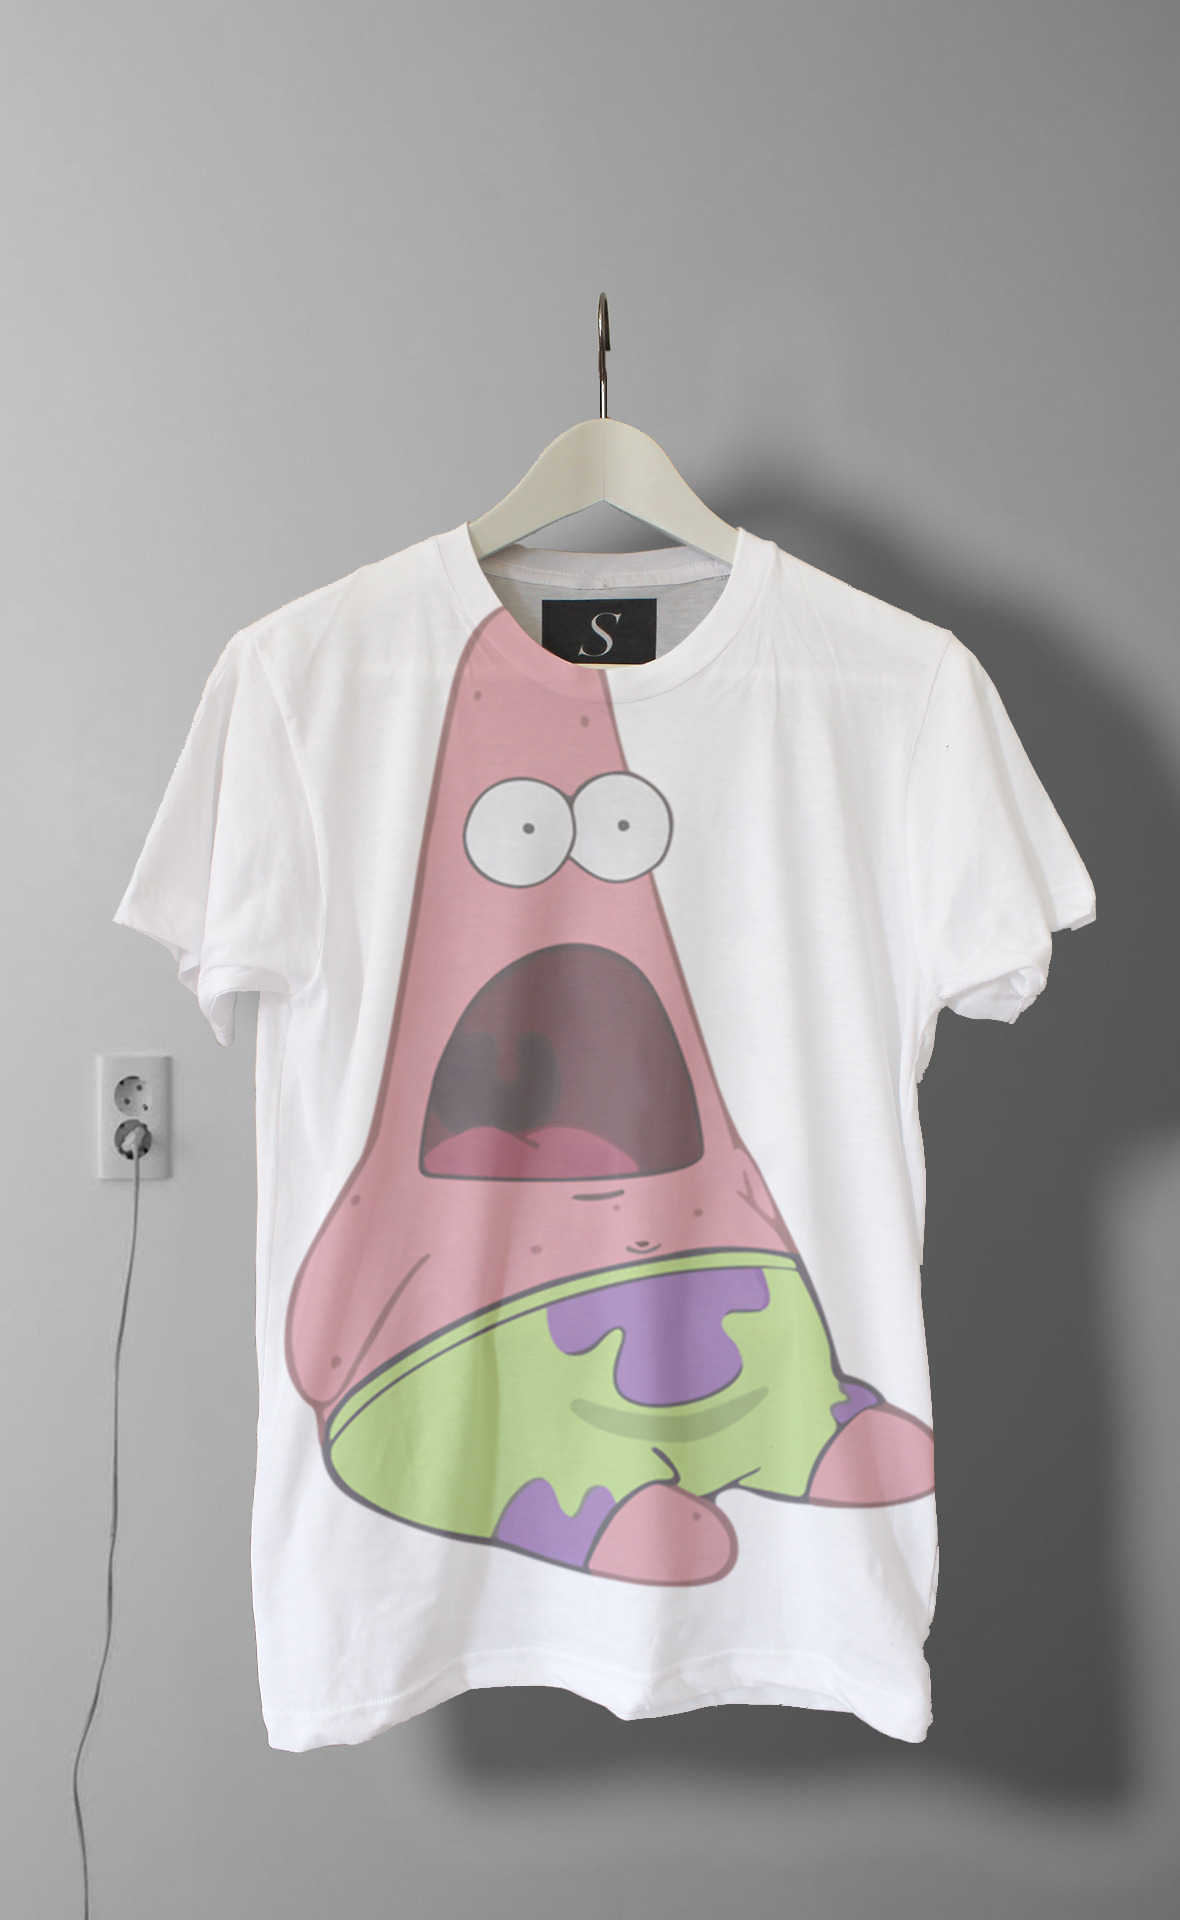 rounding:  crystallized-teardrops:  OMG  I NEED THIS SHIRT